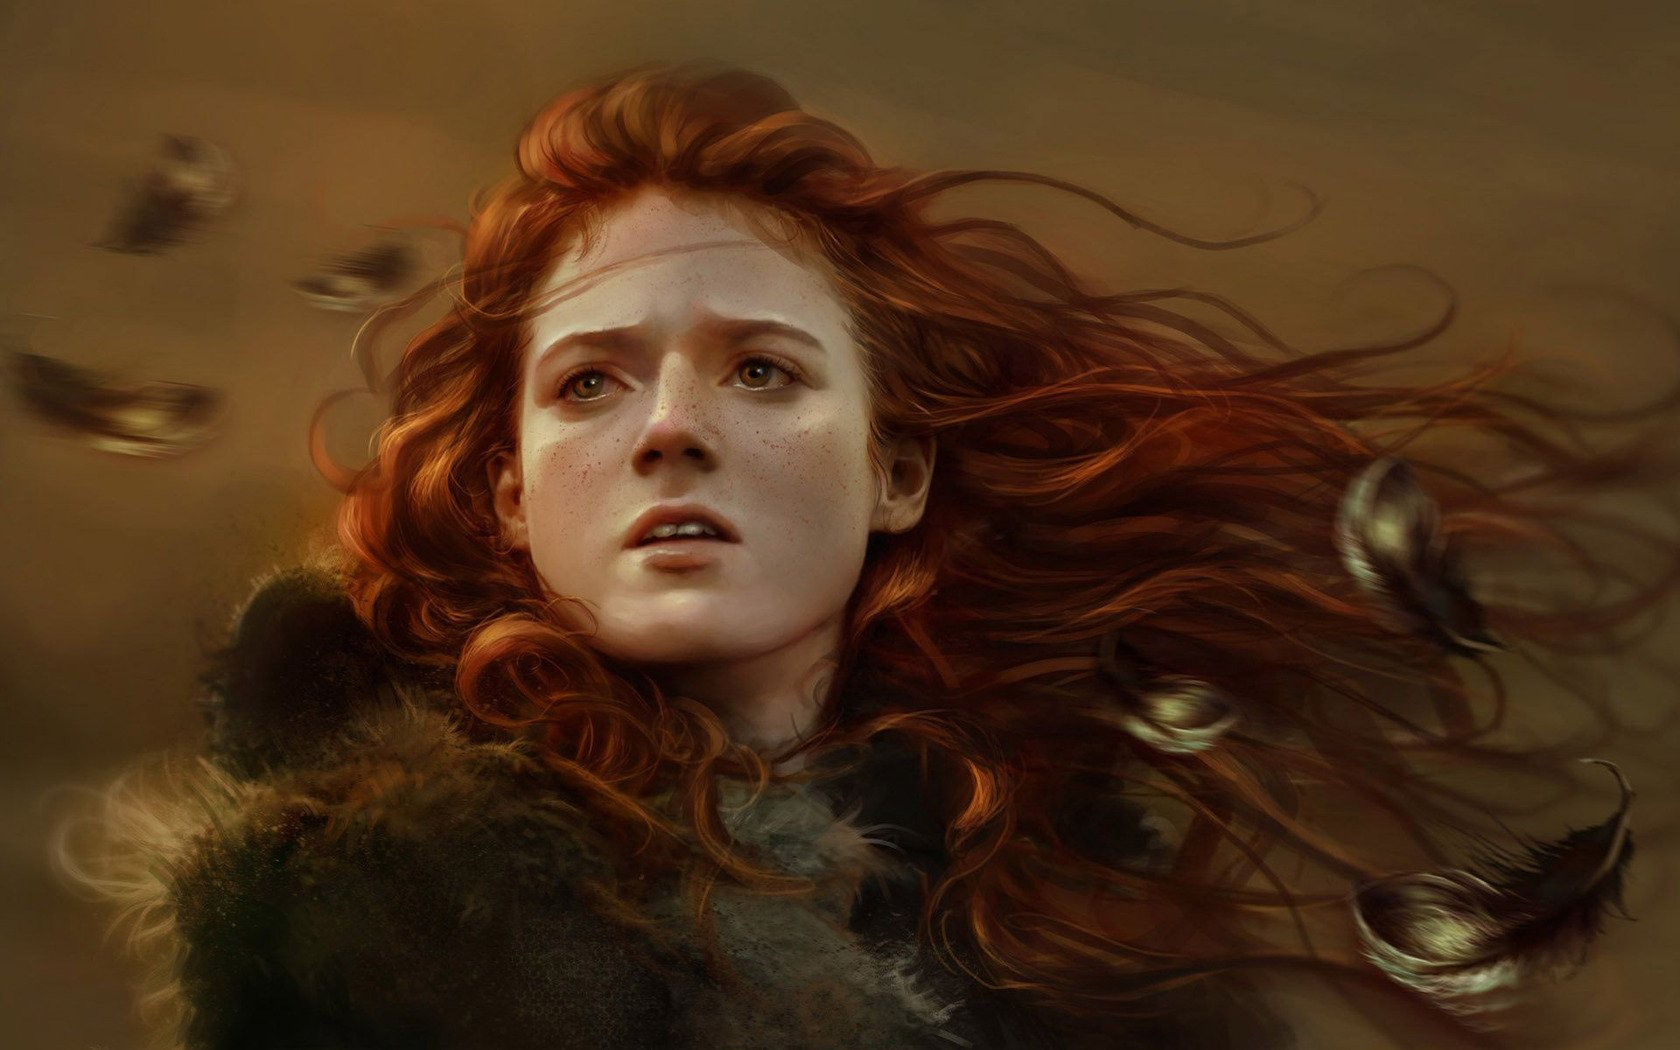 Download Ygritte   Game of Thrones wallpaper 1680x1050